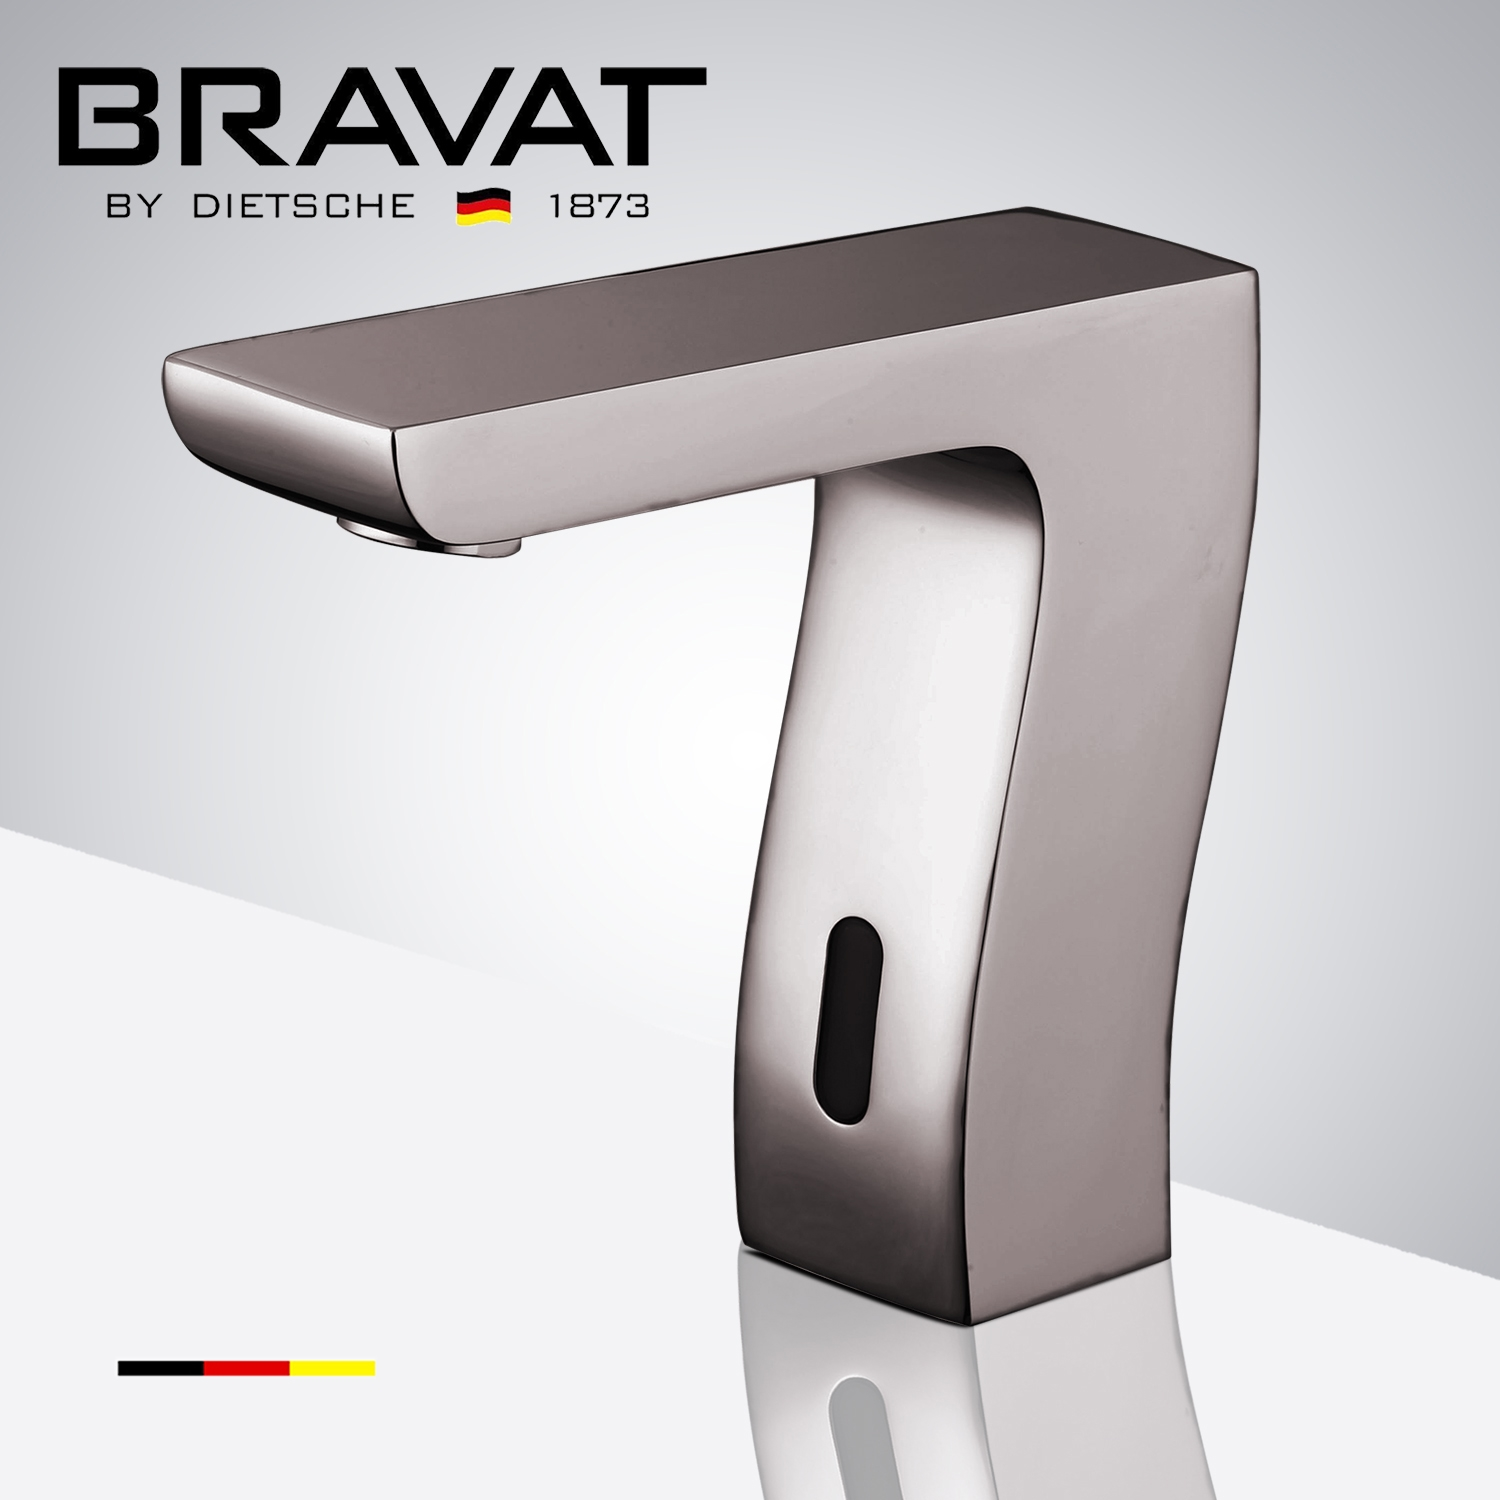 Bravat Commercial Brushed Nickel Automatic Hands Free Motion Sensor Faucet